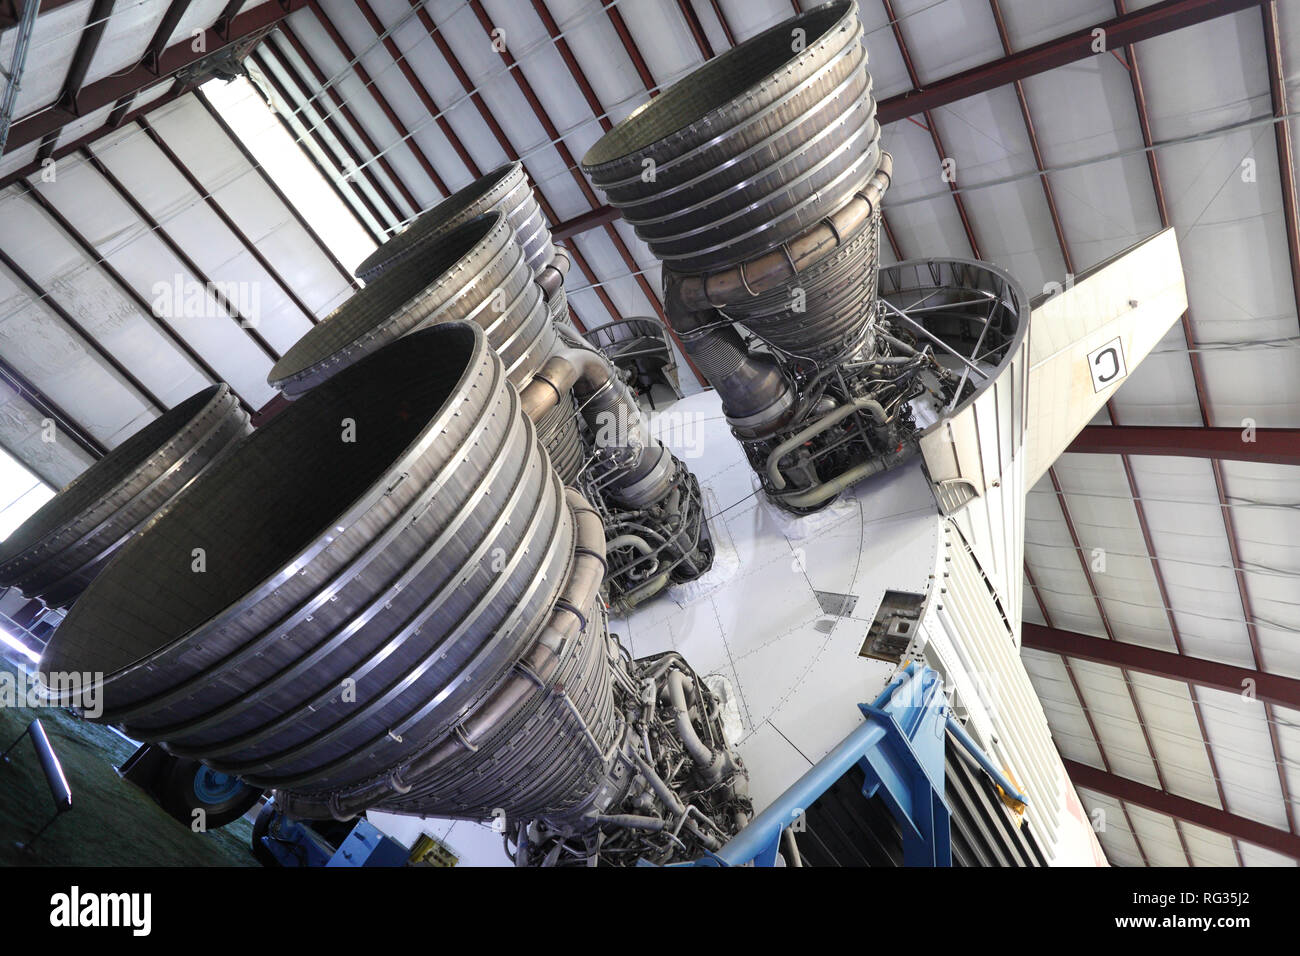 Saturn V F-1 rocket engines of the first stage - Stock Image